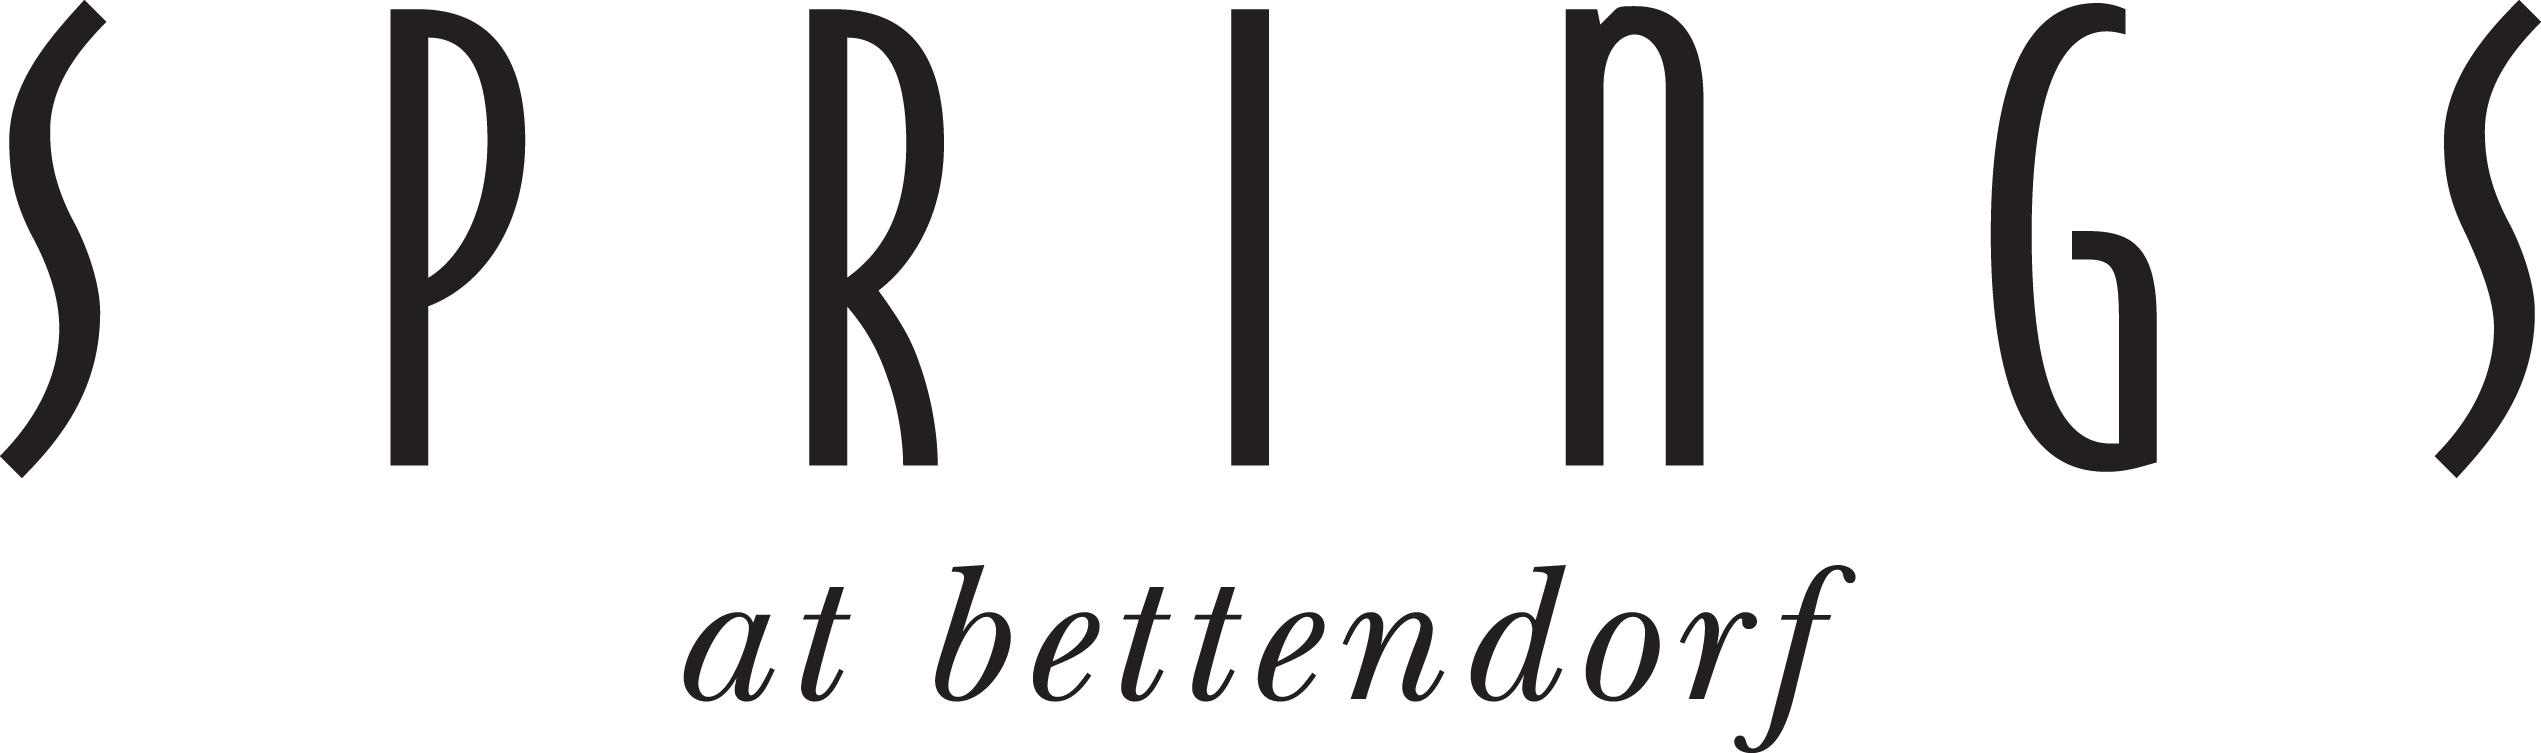 Black Bettendorf Logo